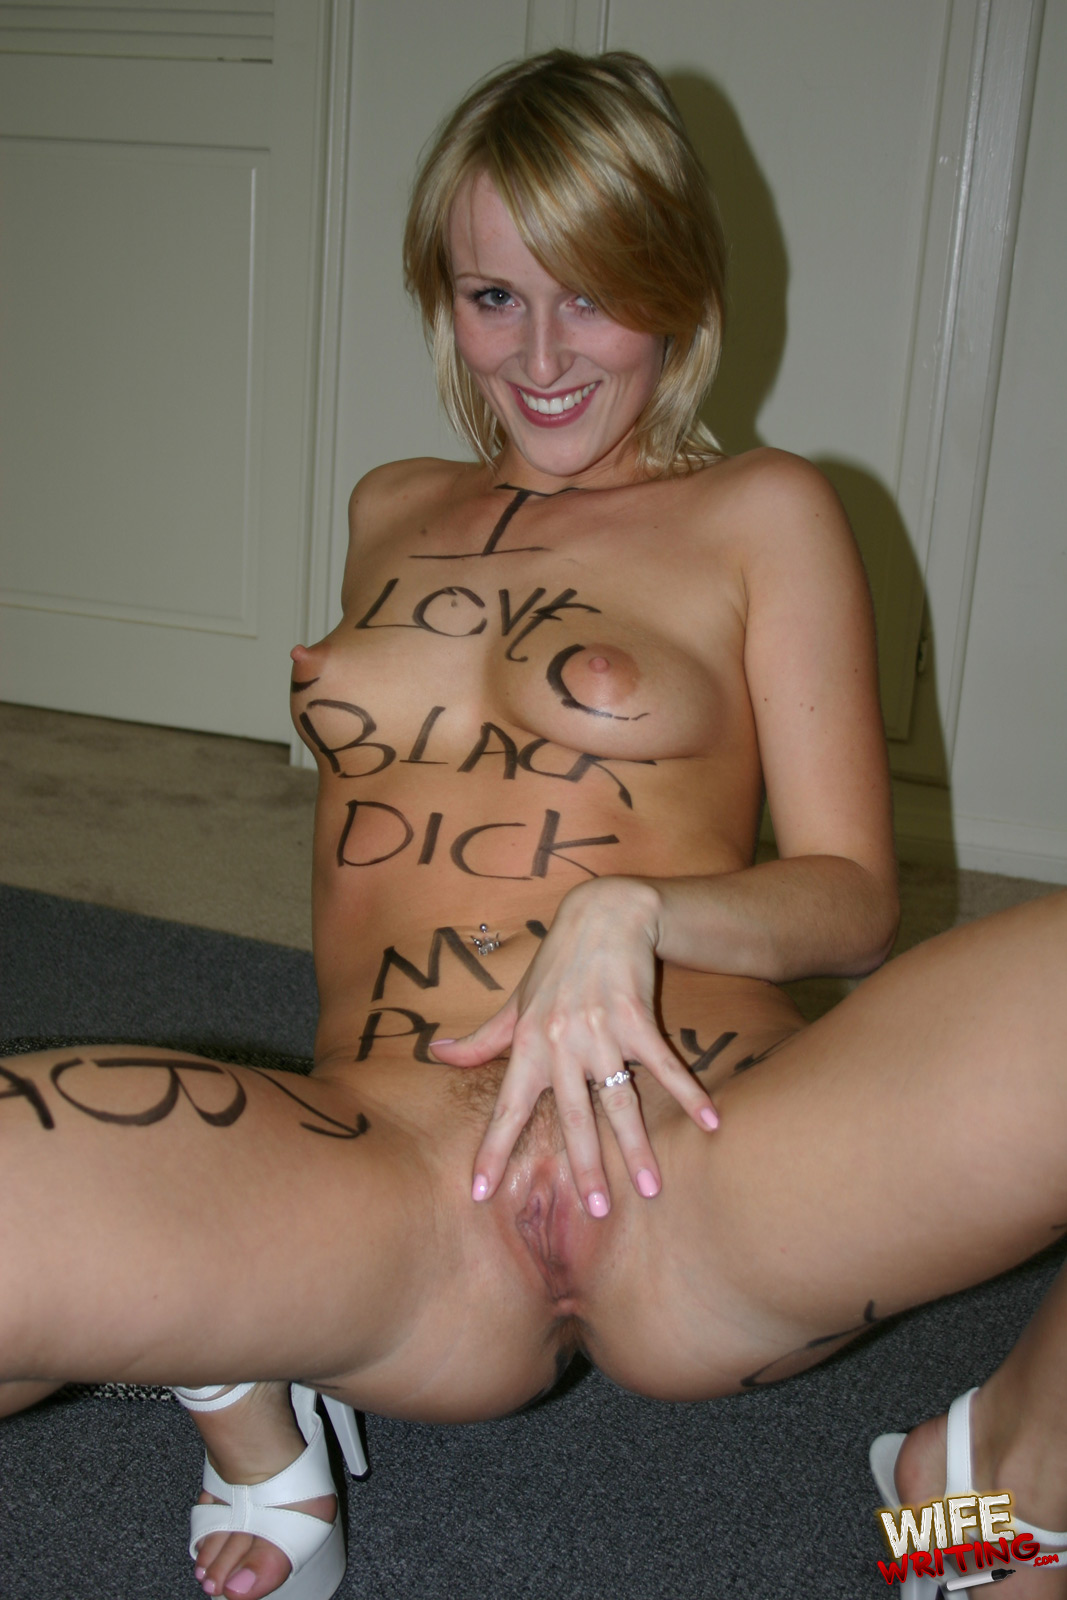 Wife fuck husband pics